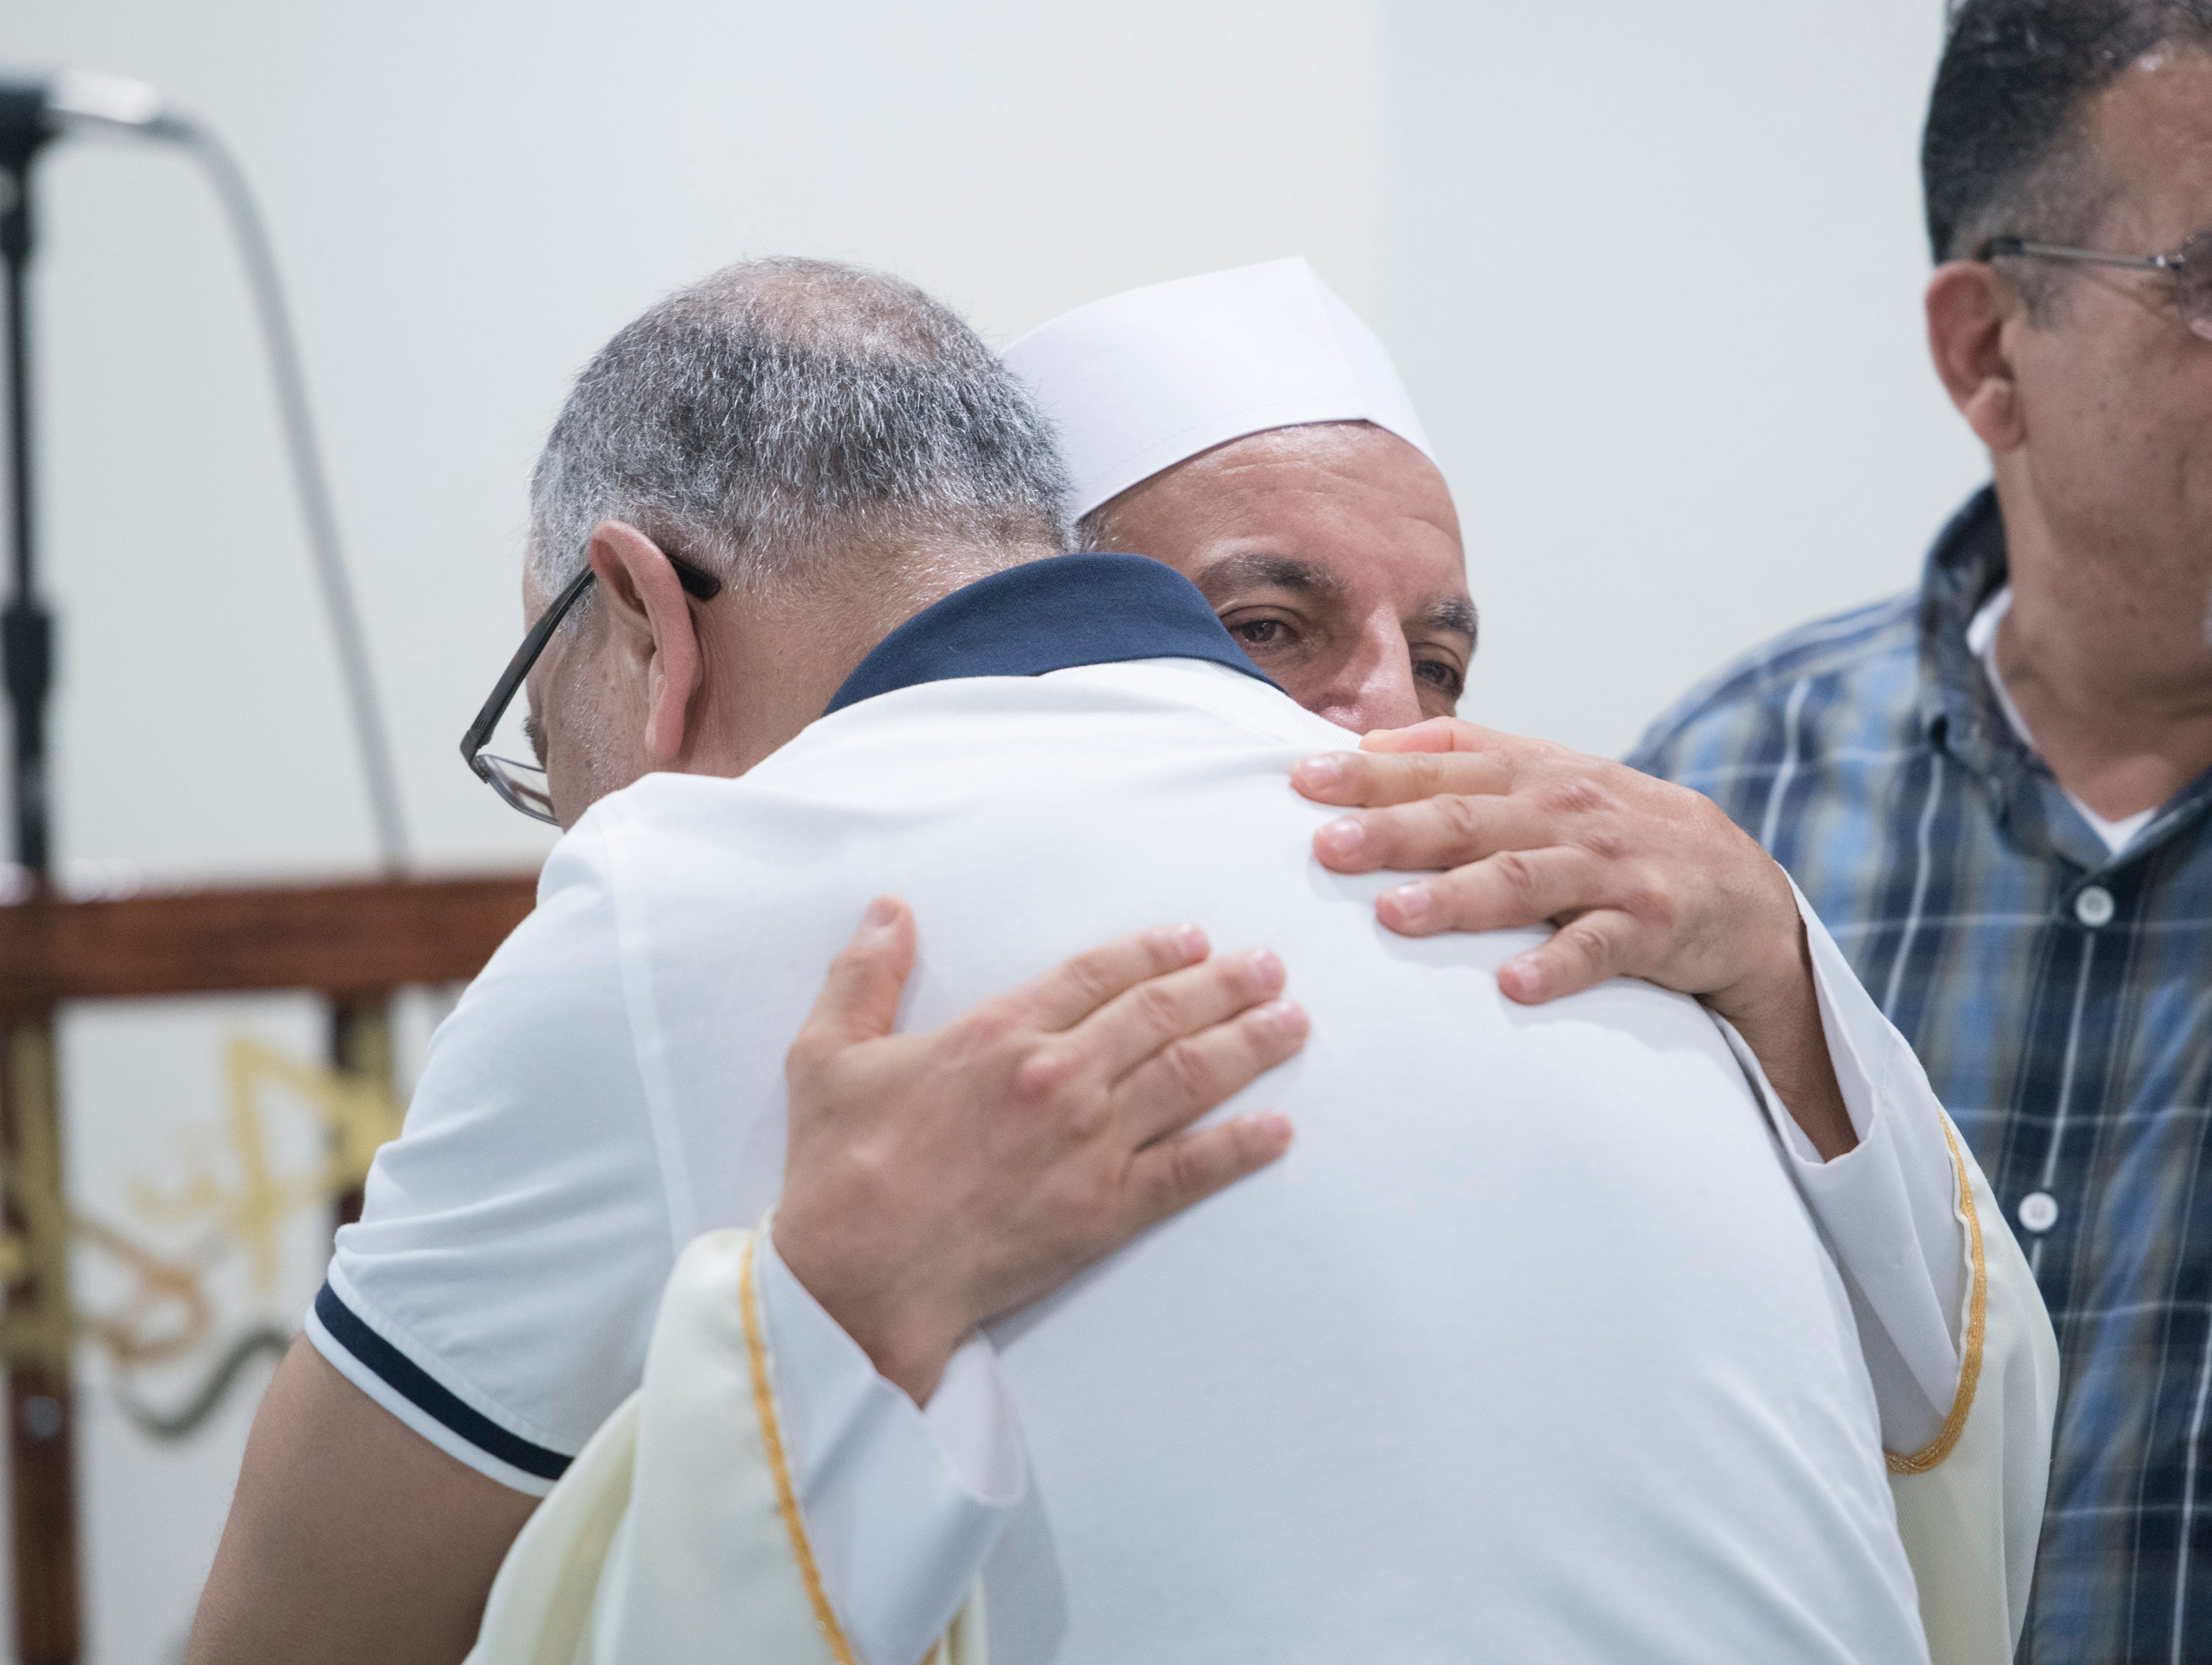 Imam Hosny Ibriham, top, gives a hug during Jumu'ah (Friday Prayer) at the Islamic Center of Northwest Florida in Pensacola on Friday, March 15, 2019.